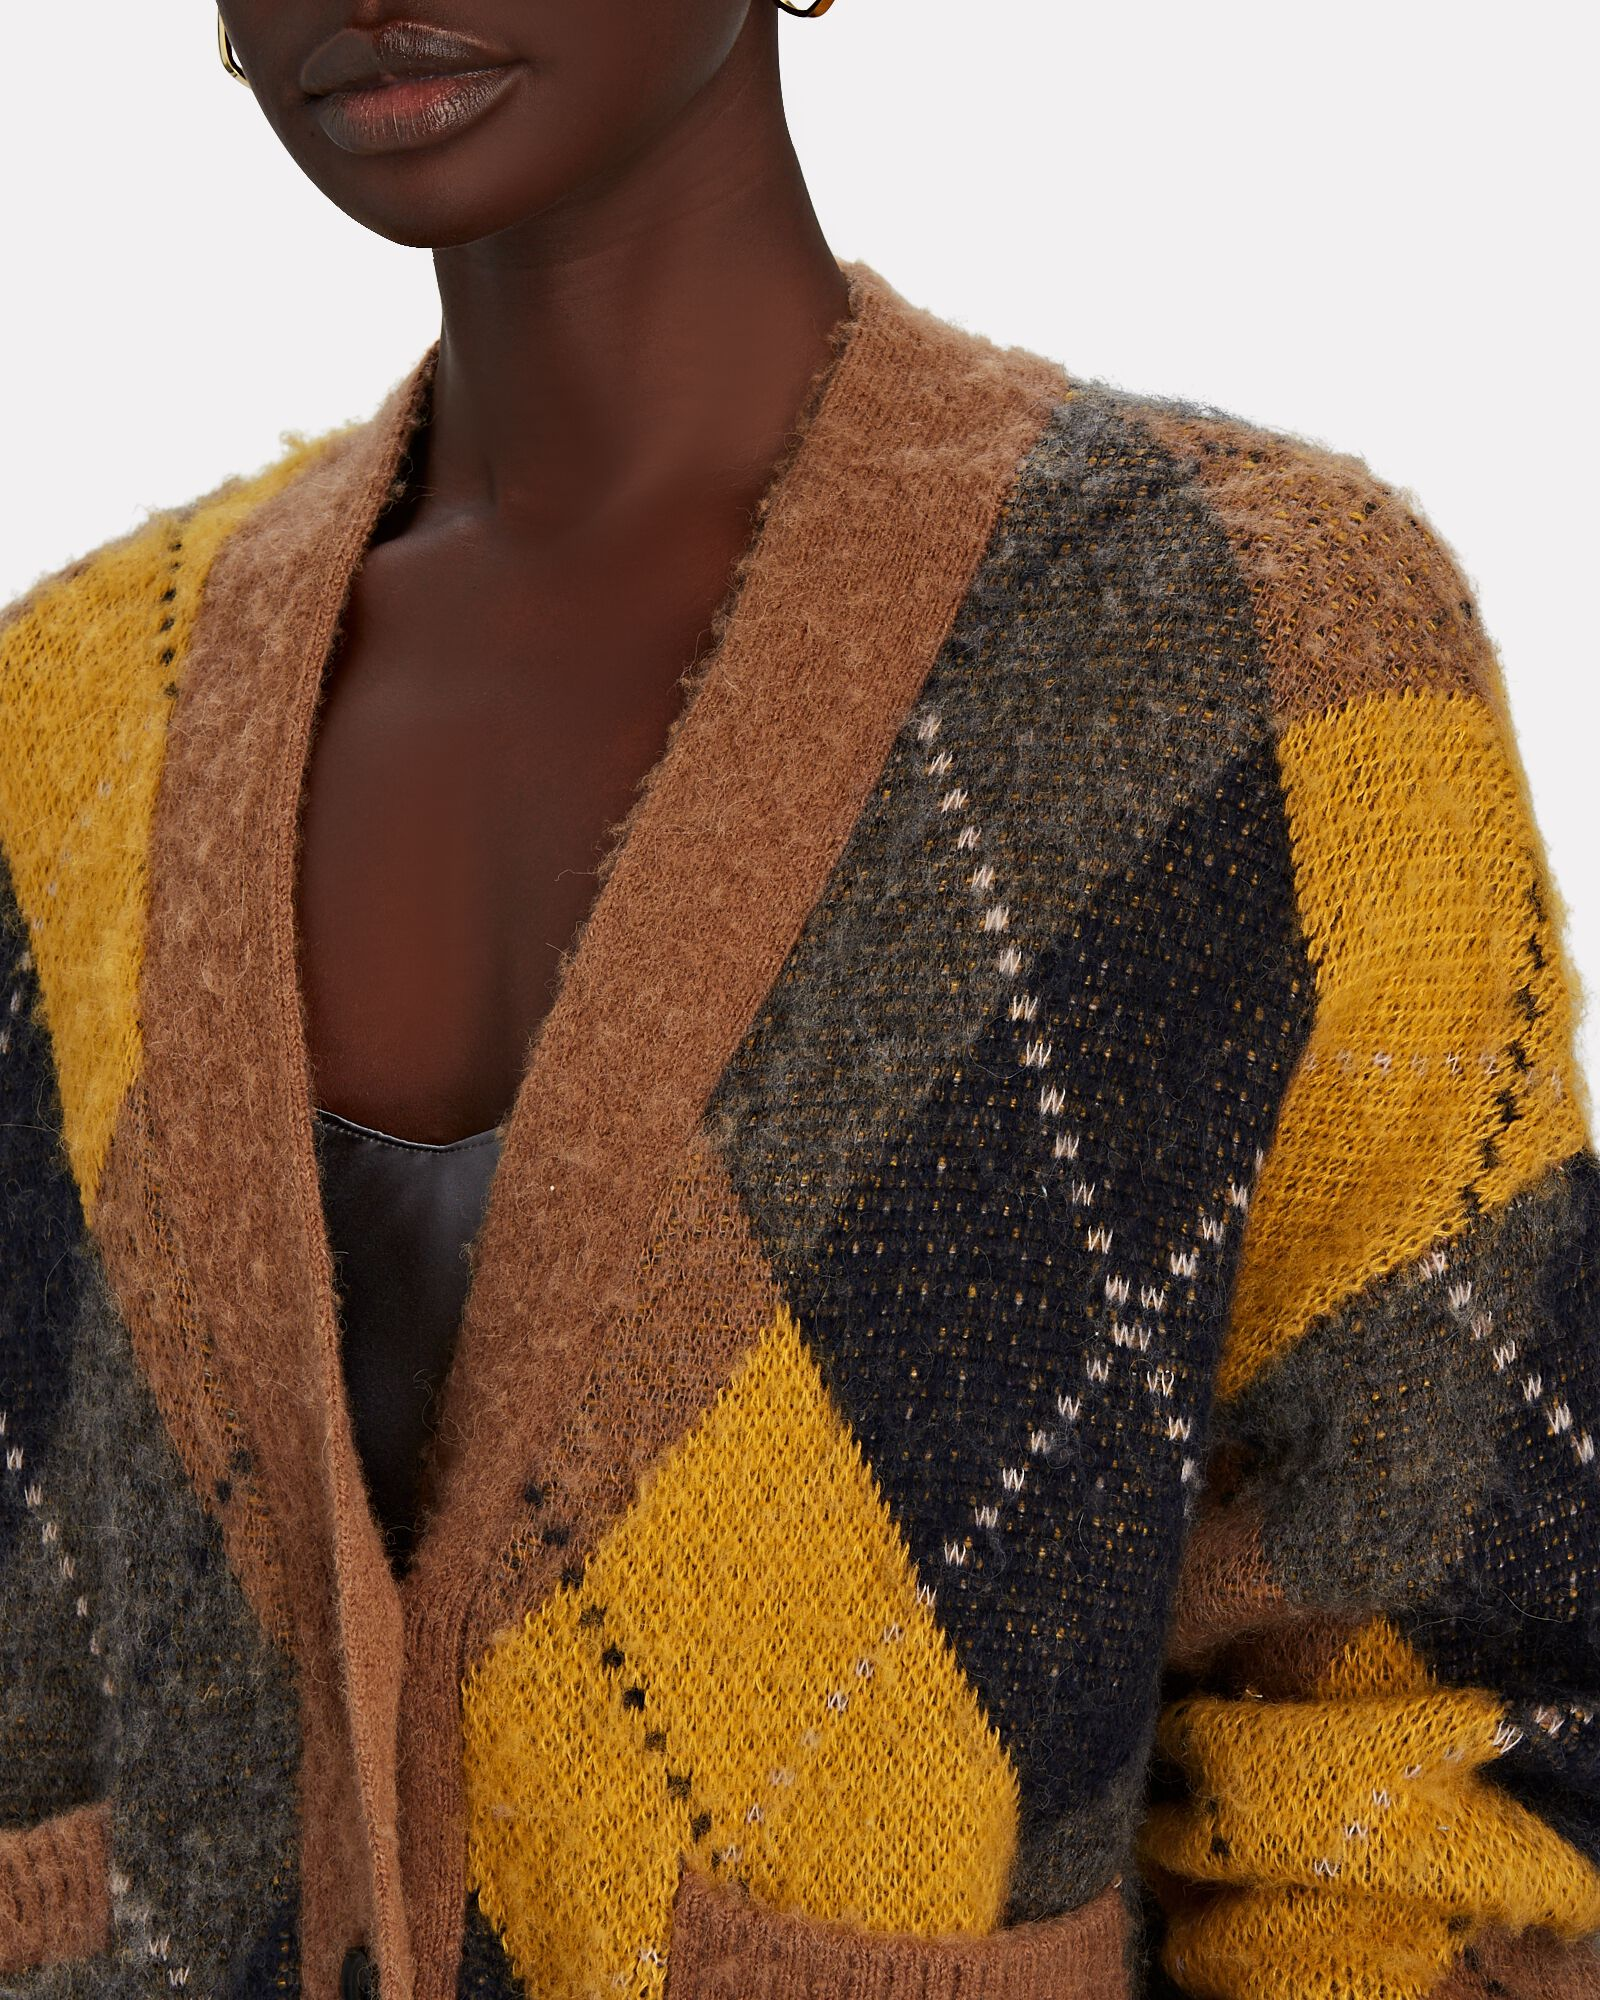 90s Oversized Cropped Cardigan, YELLOW, hi-res